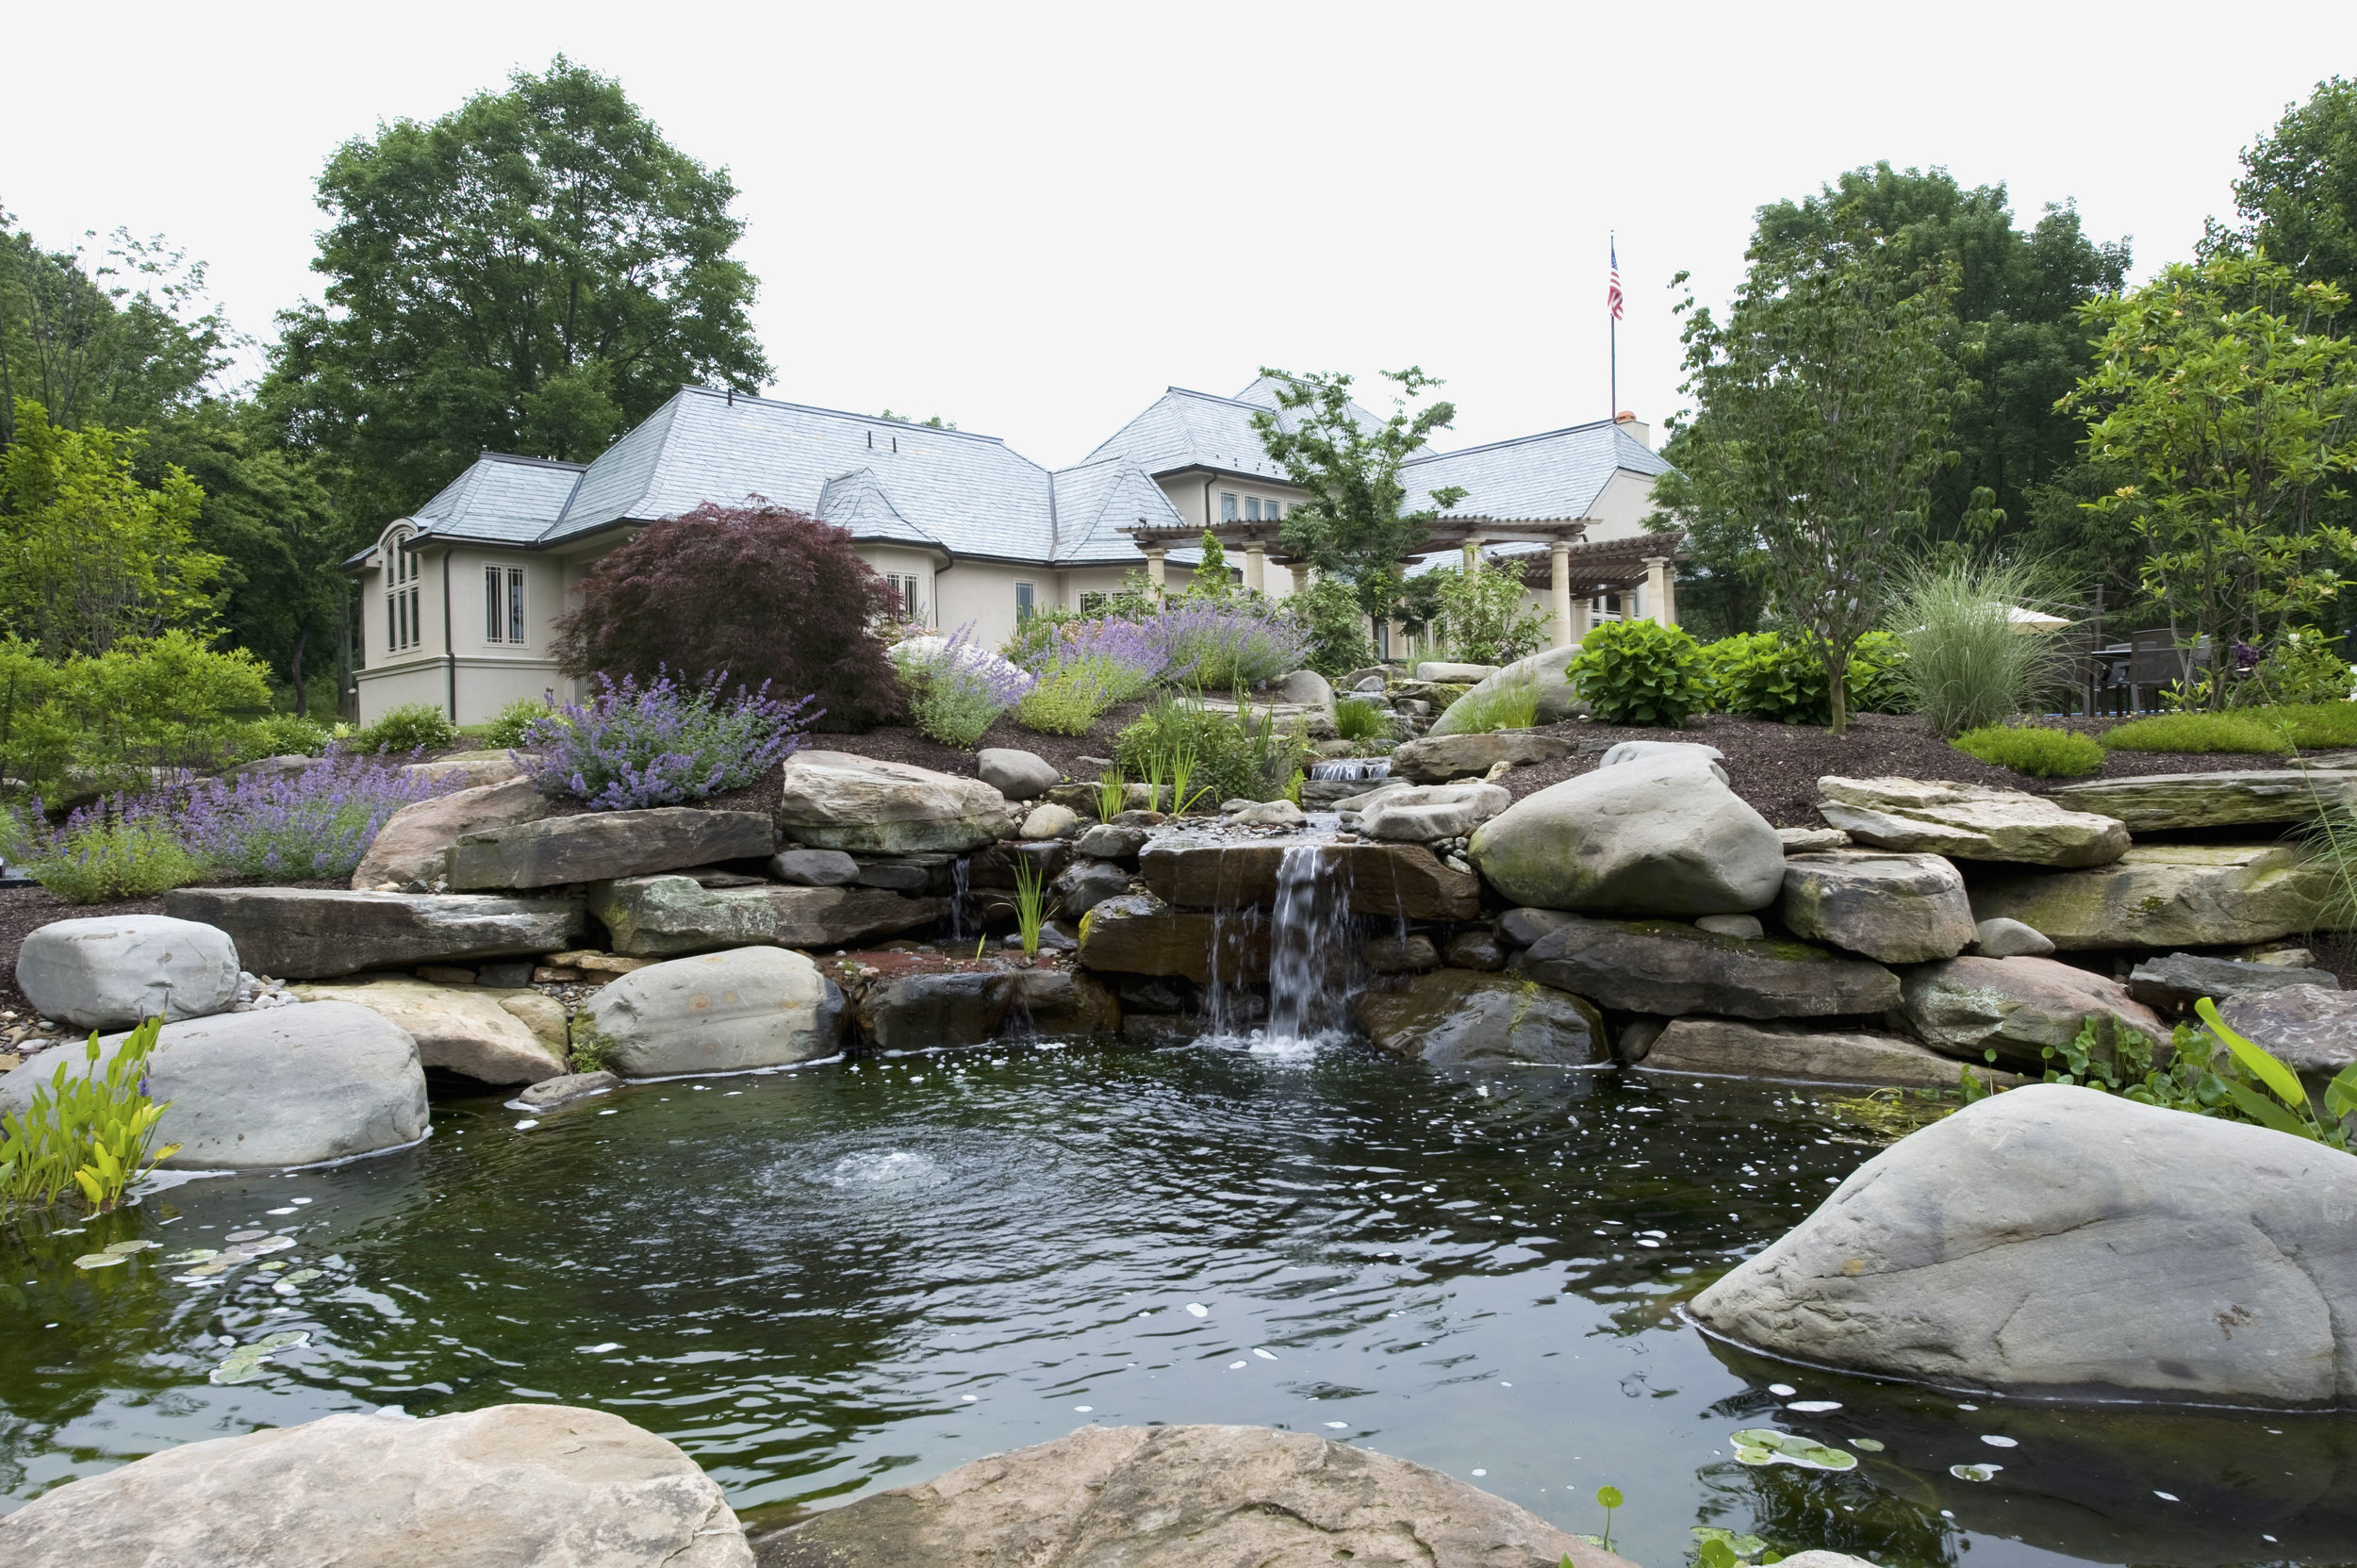 Koi pond vs Garden pond - What's the difference? — PondWorks Natural Looking Garden Pond Designs on natural looking bird baths, natural looking fencing, natural looking pond liners, natural looking waterfalls, natural looking porches, natural looking retaining walls,